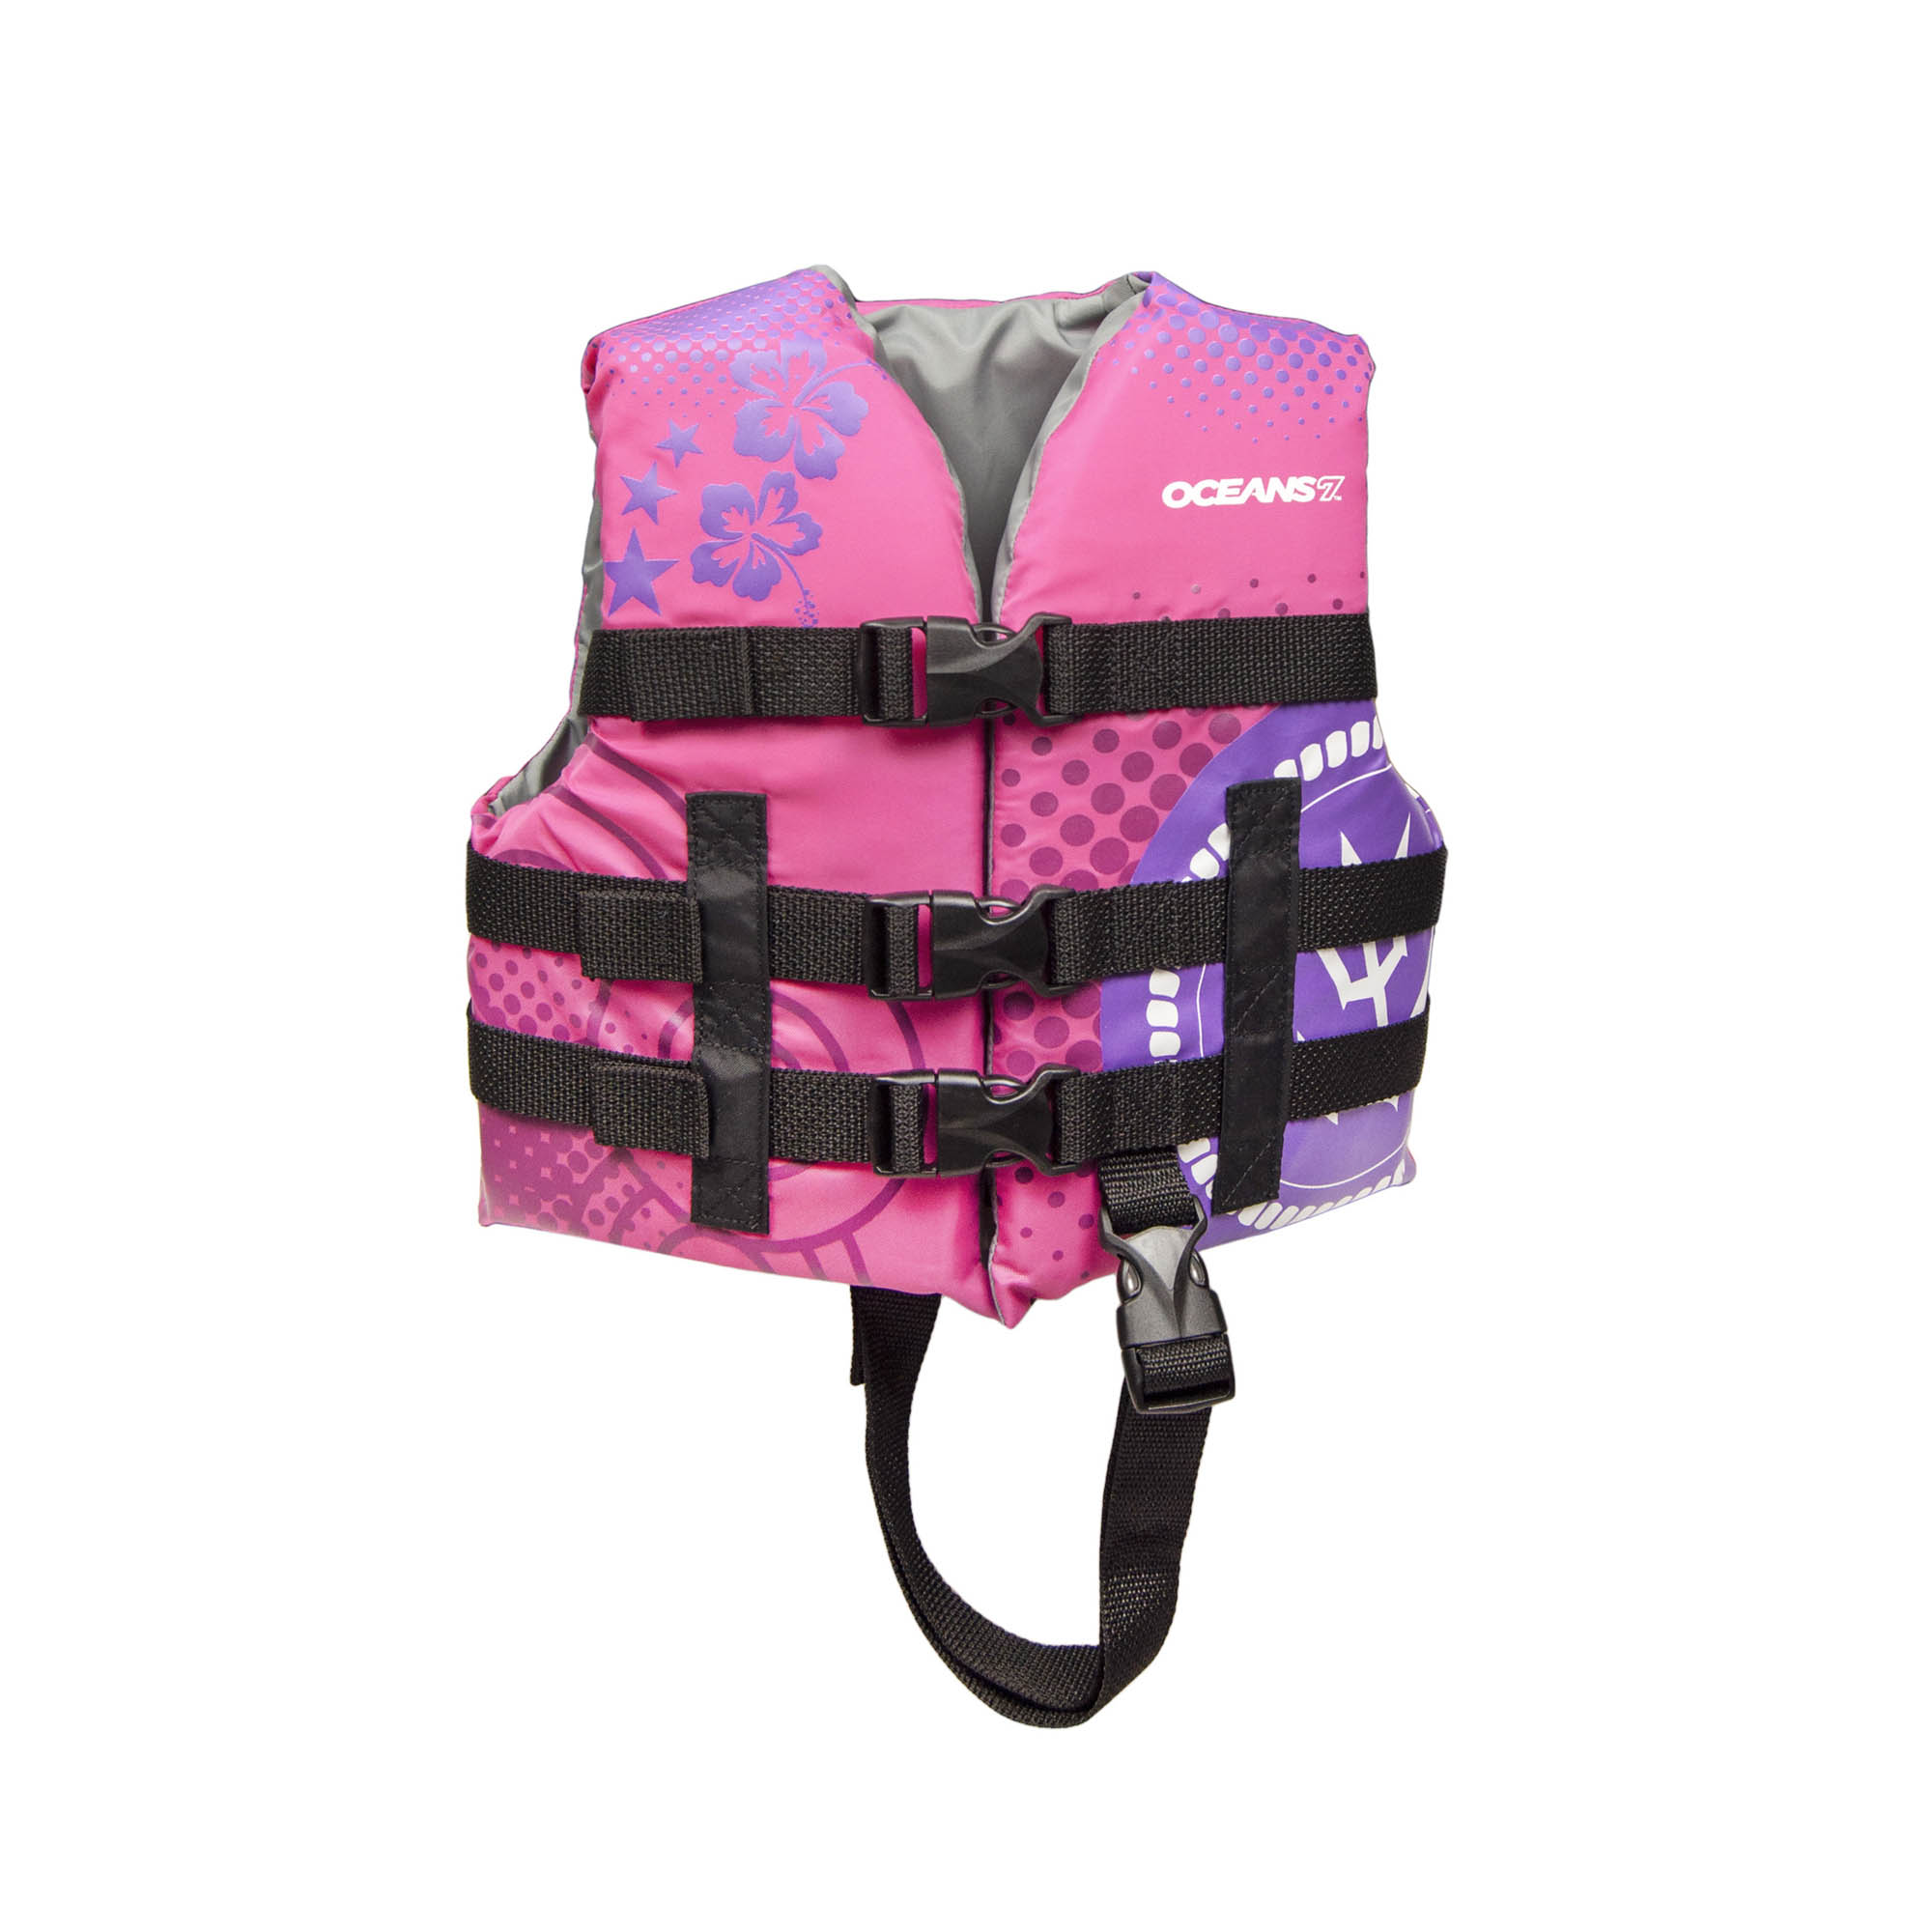 Oceans 7 USCGA 3 Buckle Youth Life Vest, Oxford Child, Raspberry